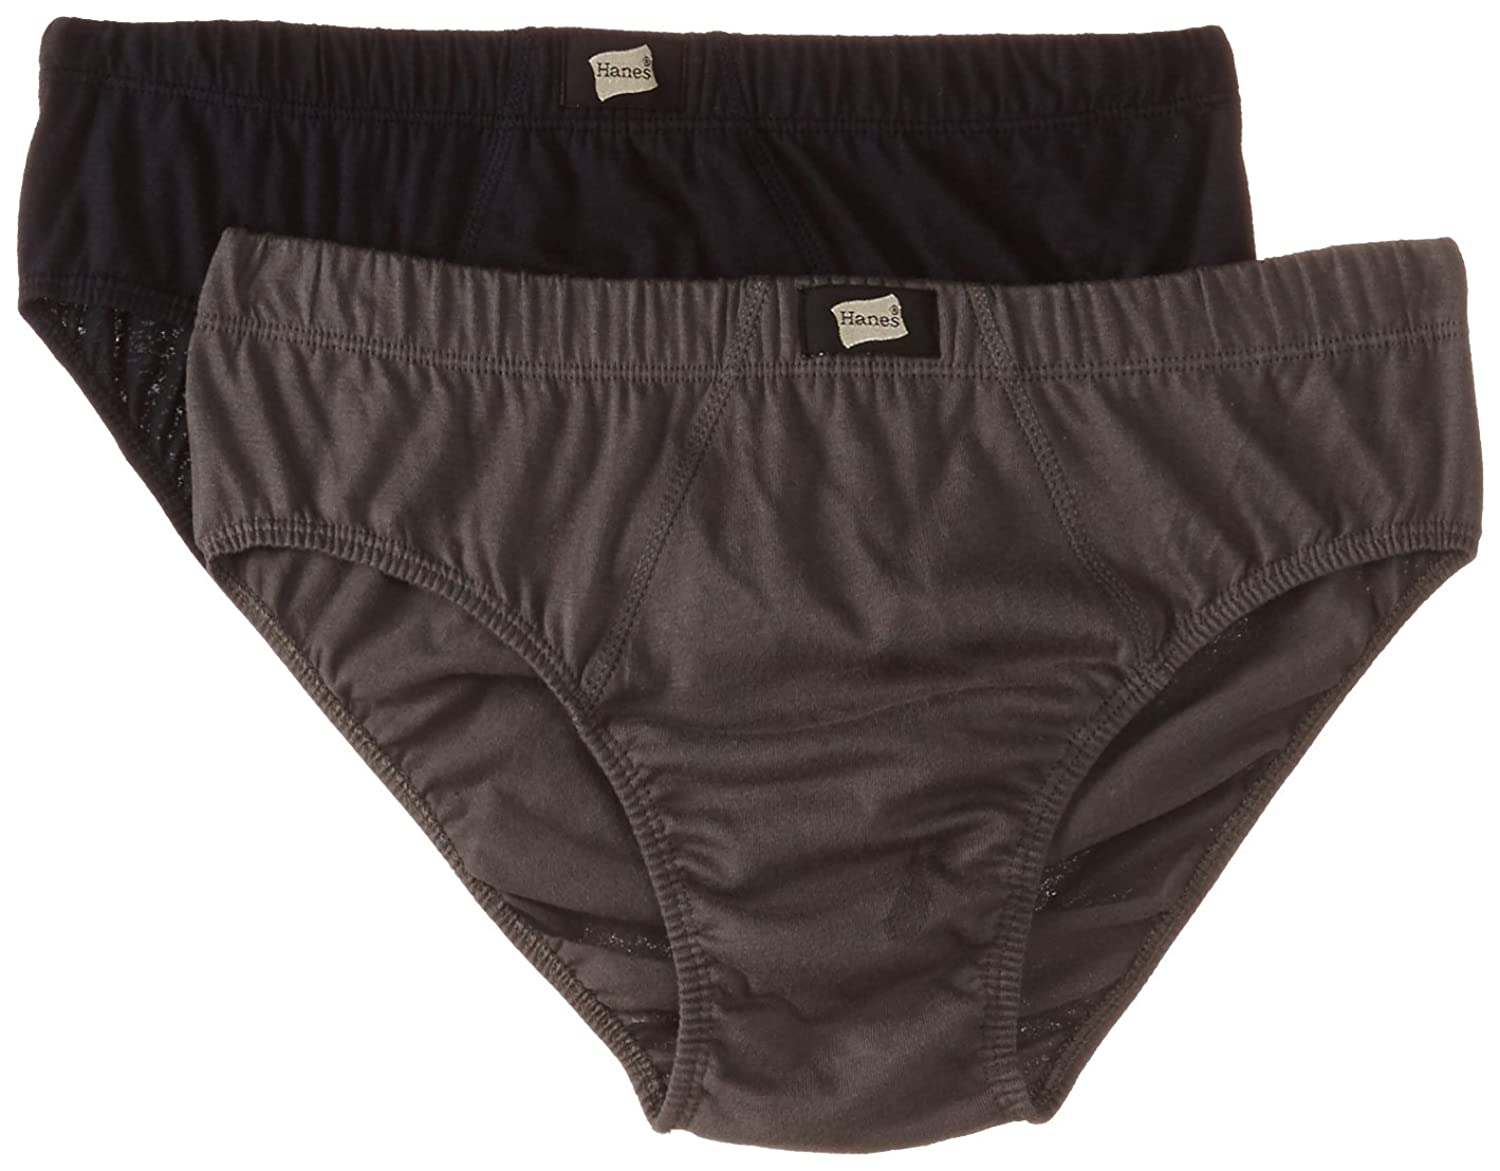 Deals on Hanes Men's Cotton Briefs (Pack of 2)